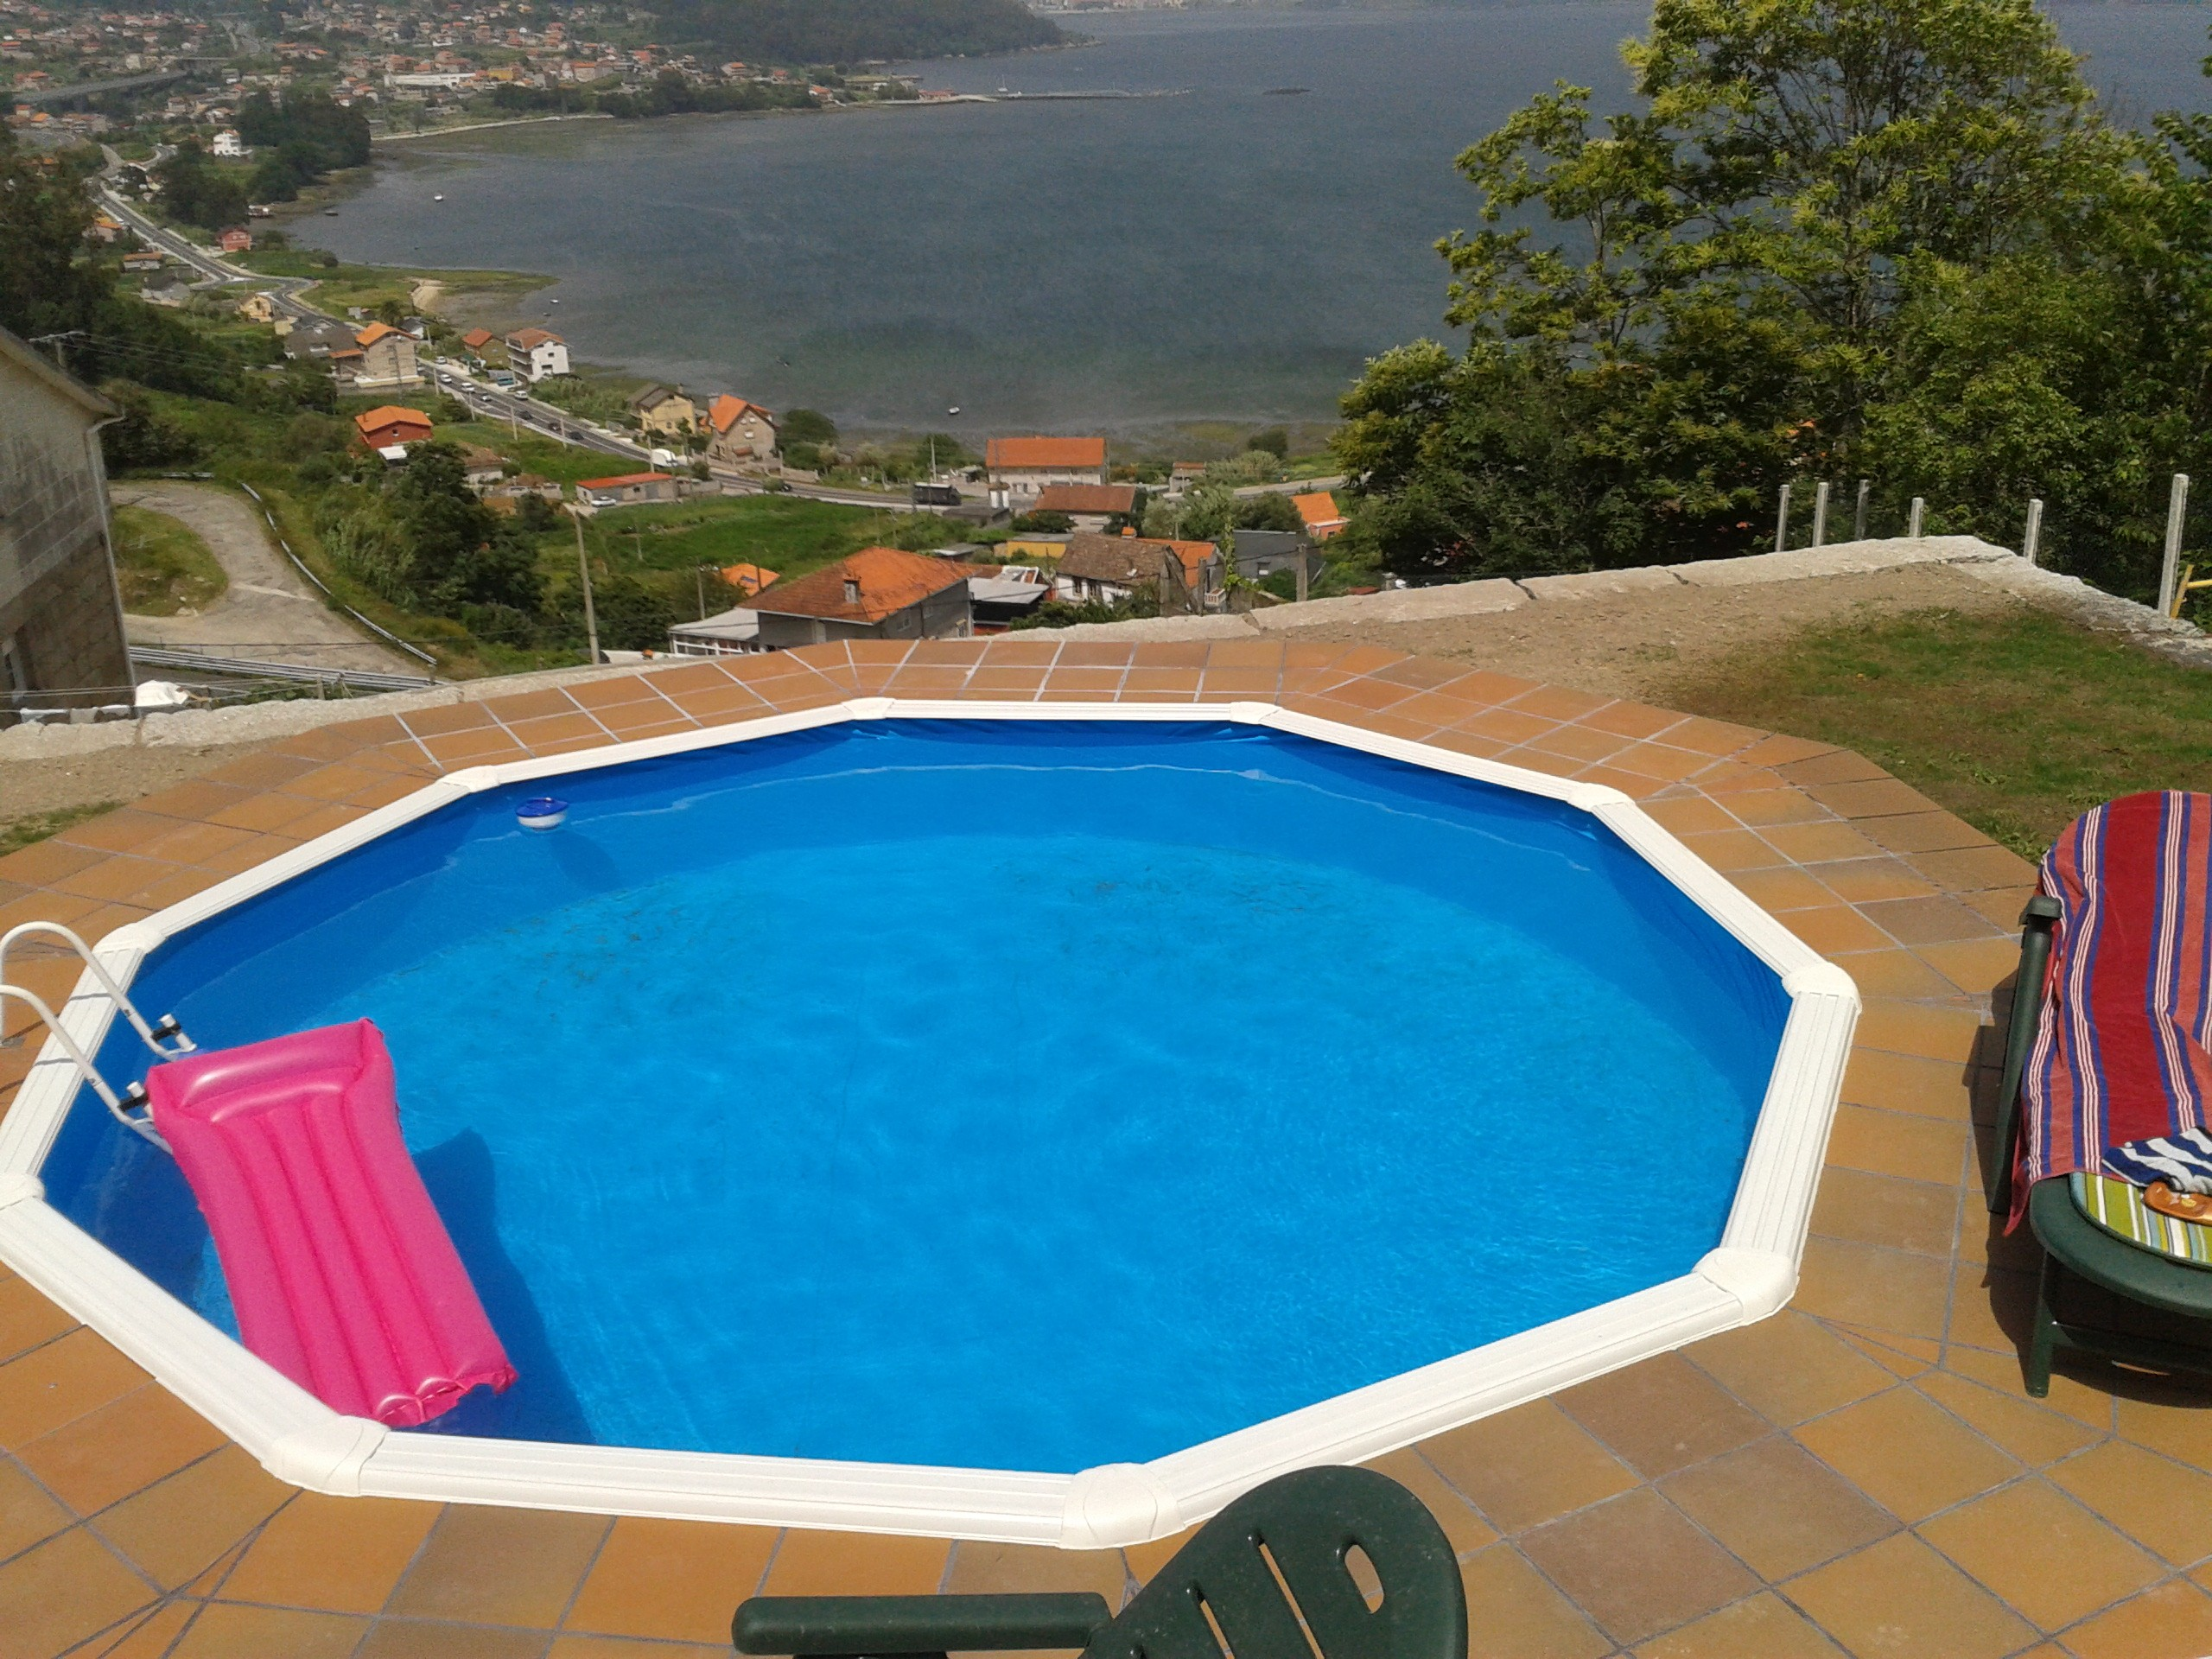 Valor do imi nas piscinas de superf cie comprar piscinas Piscina portatil pequena